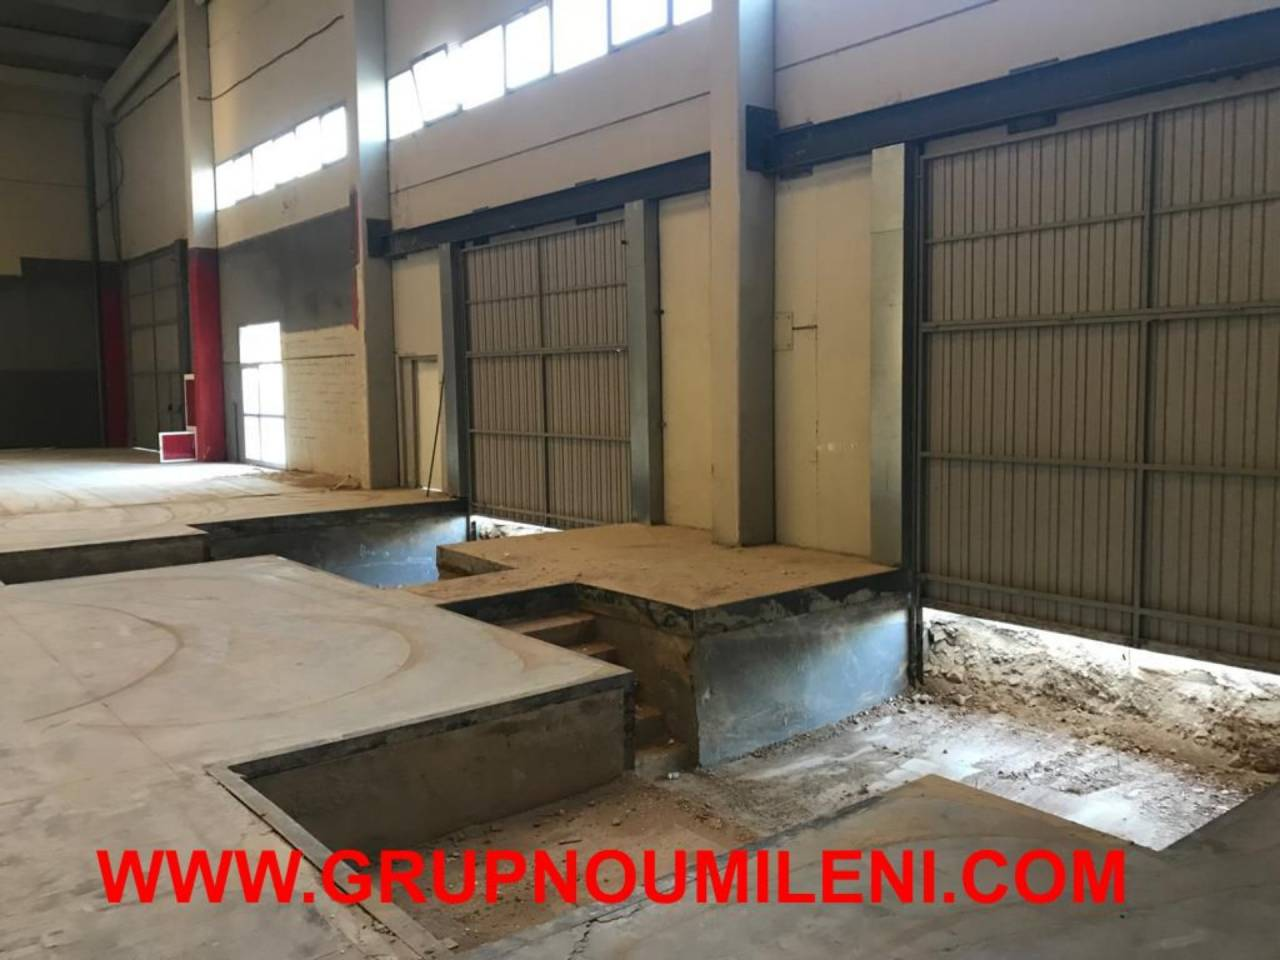 Location Bâtiment à usage industriel  Montserrat. Superficie total 2500 m², nave industrial superficie solar 2500